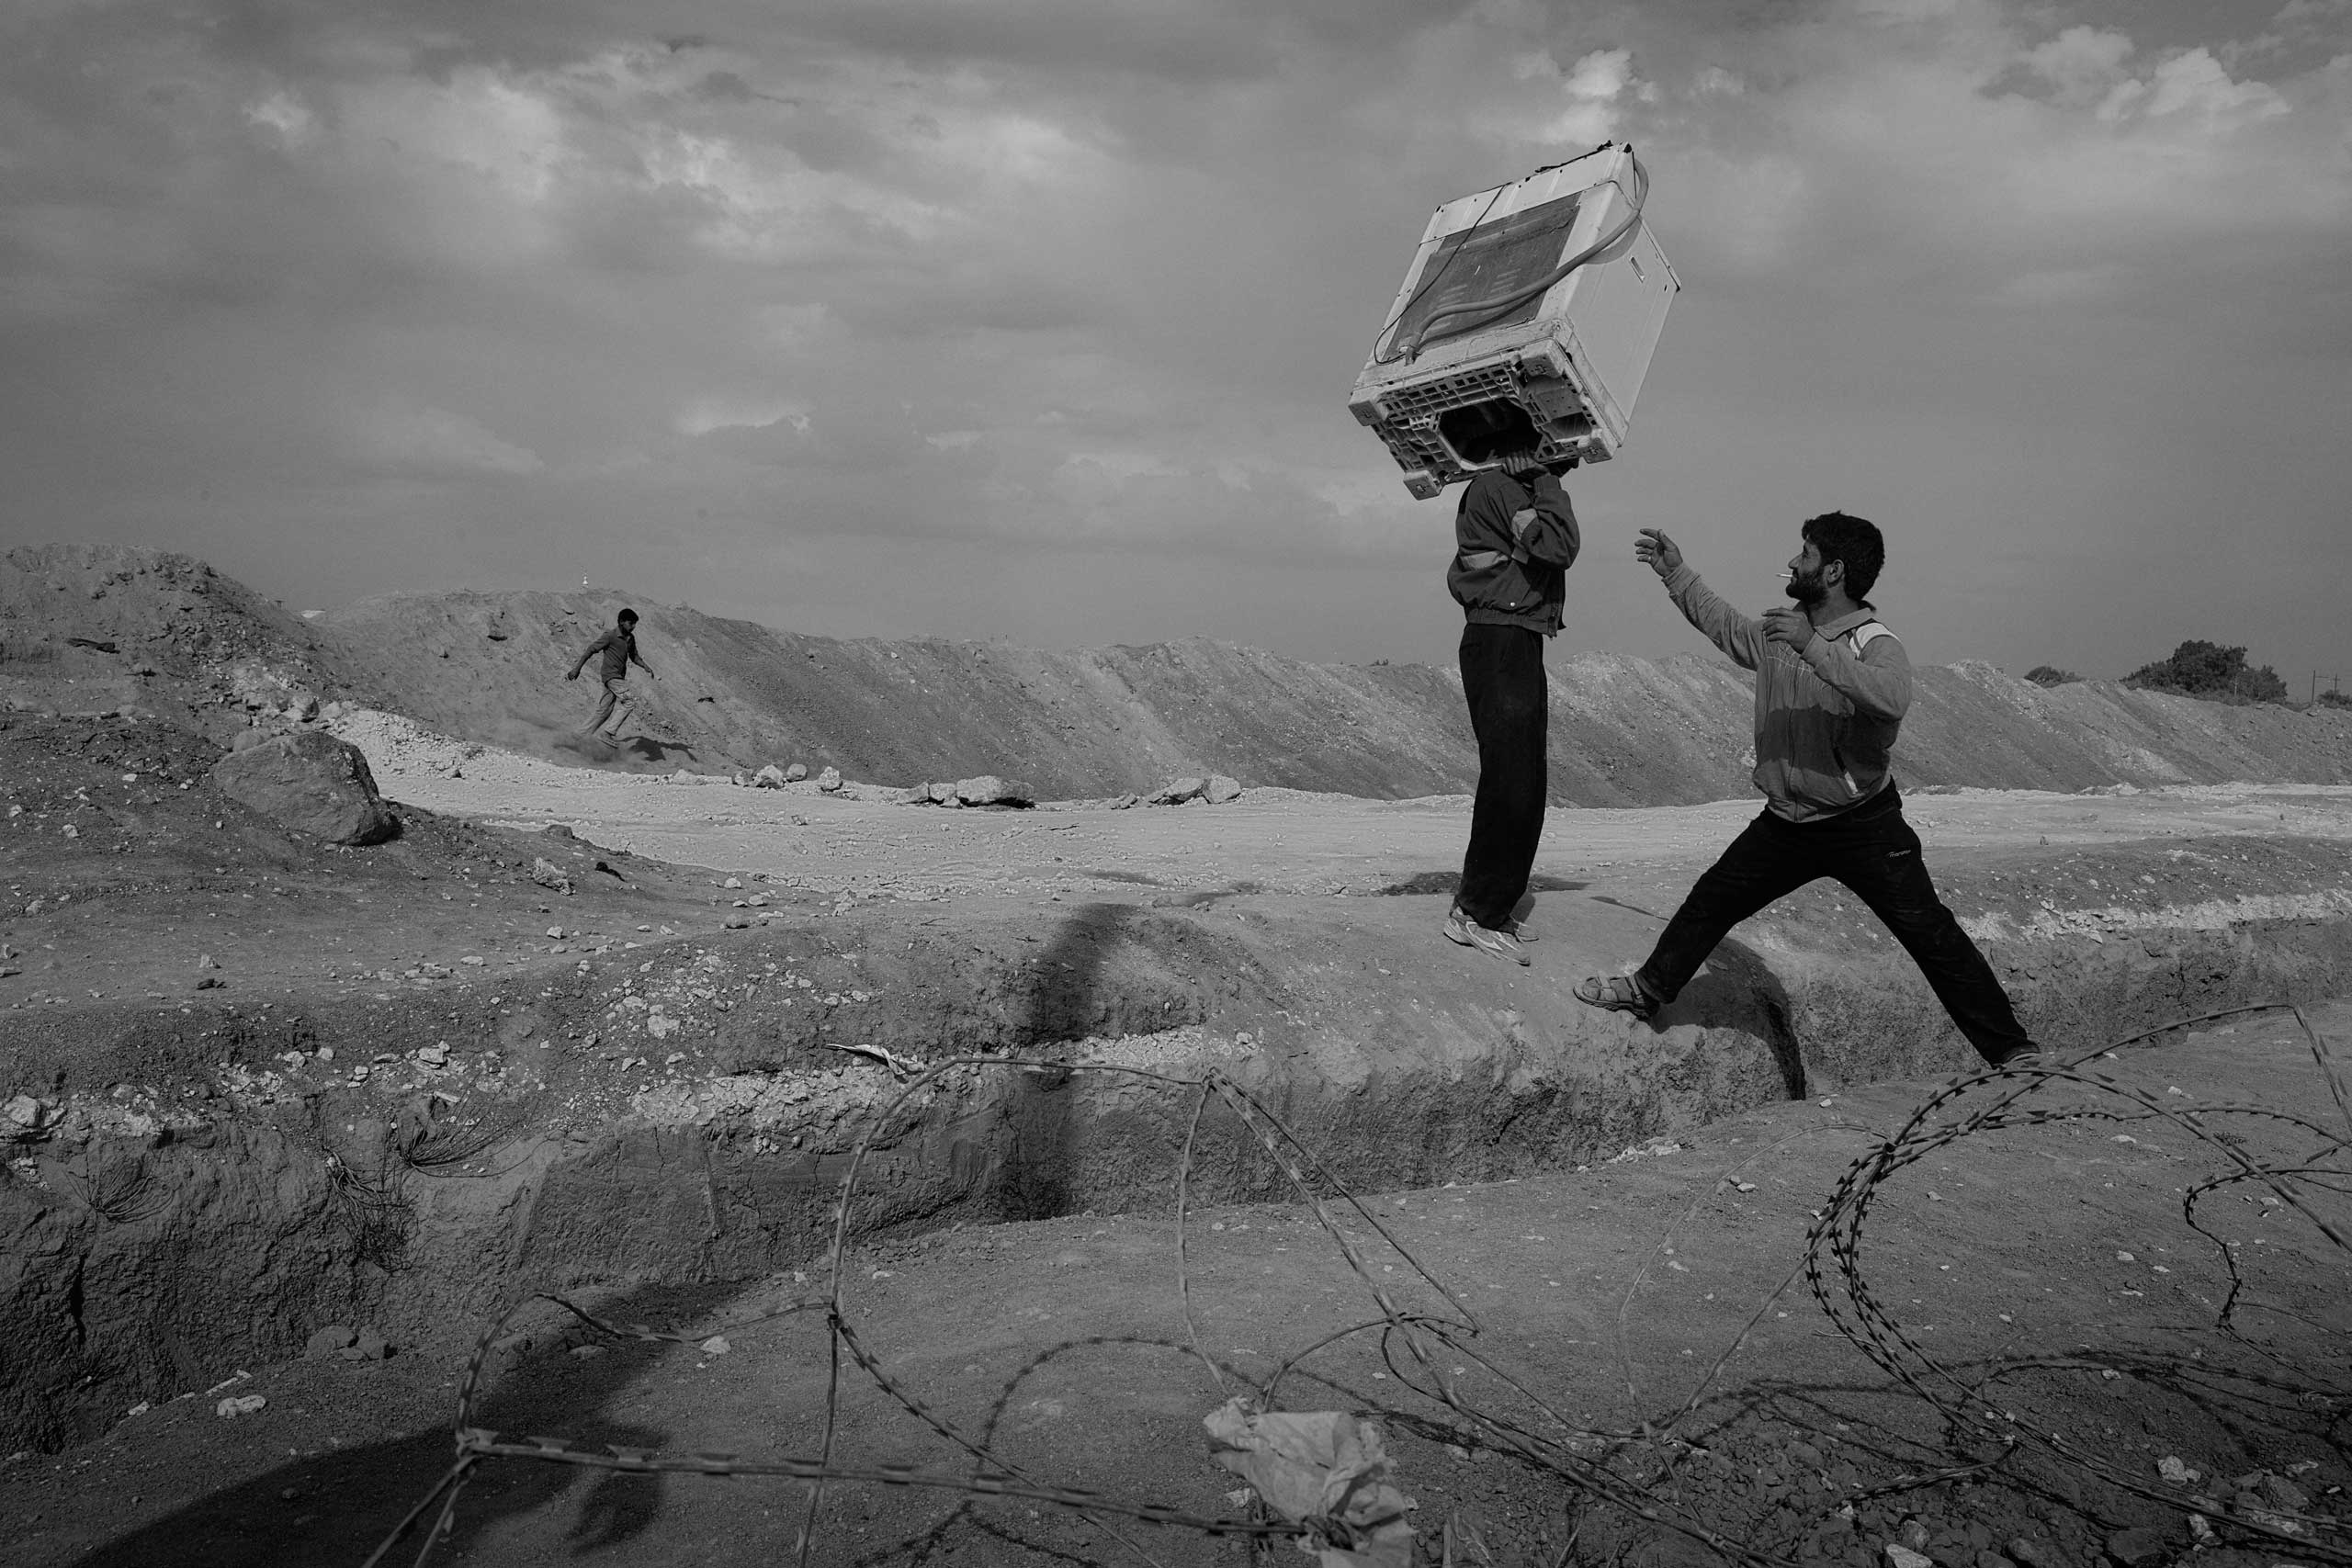 December 2013. Za'atari refugee camp, Jordan. Refugees carry an oven into the camp after bartering or selling goods for it in Jordan.